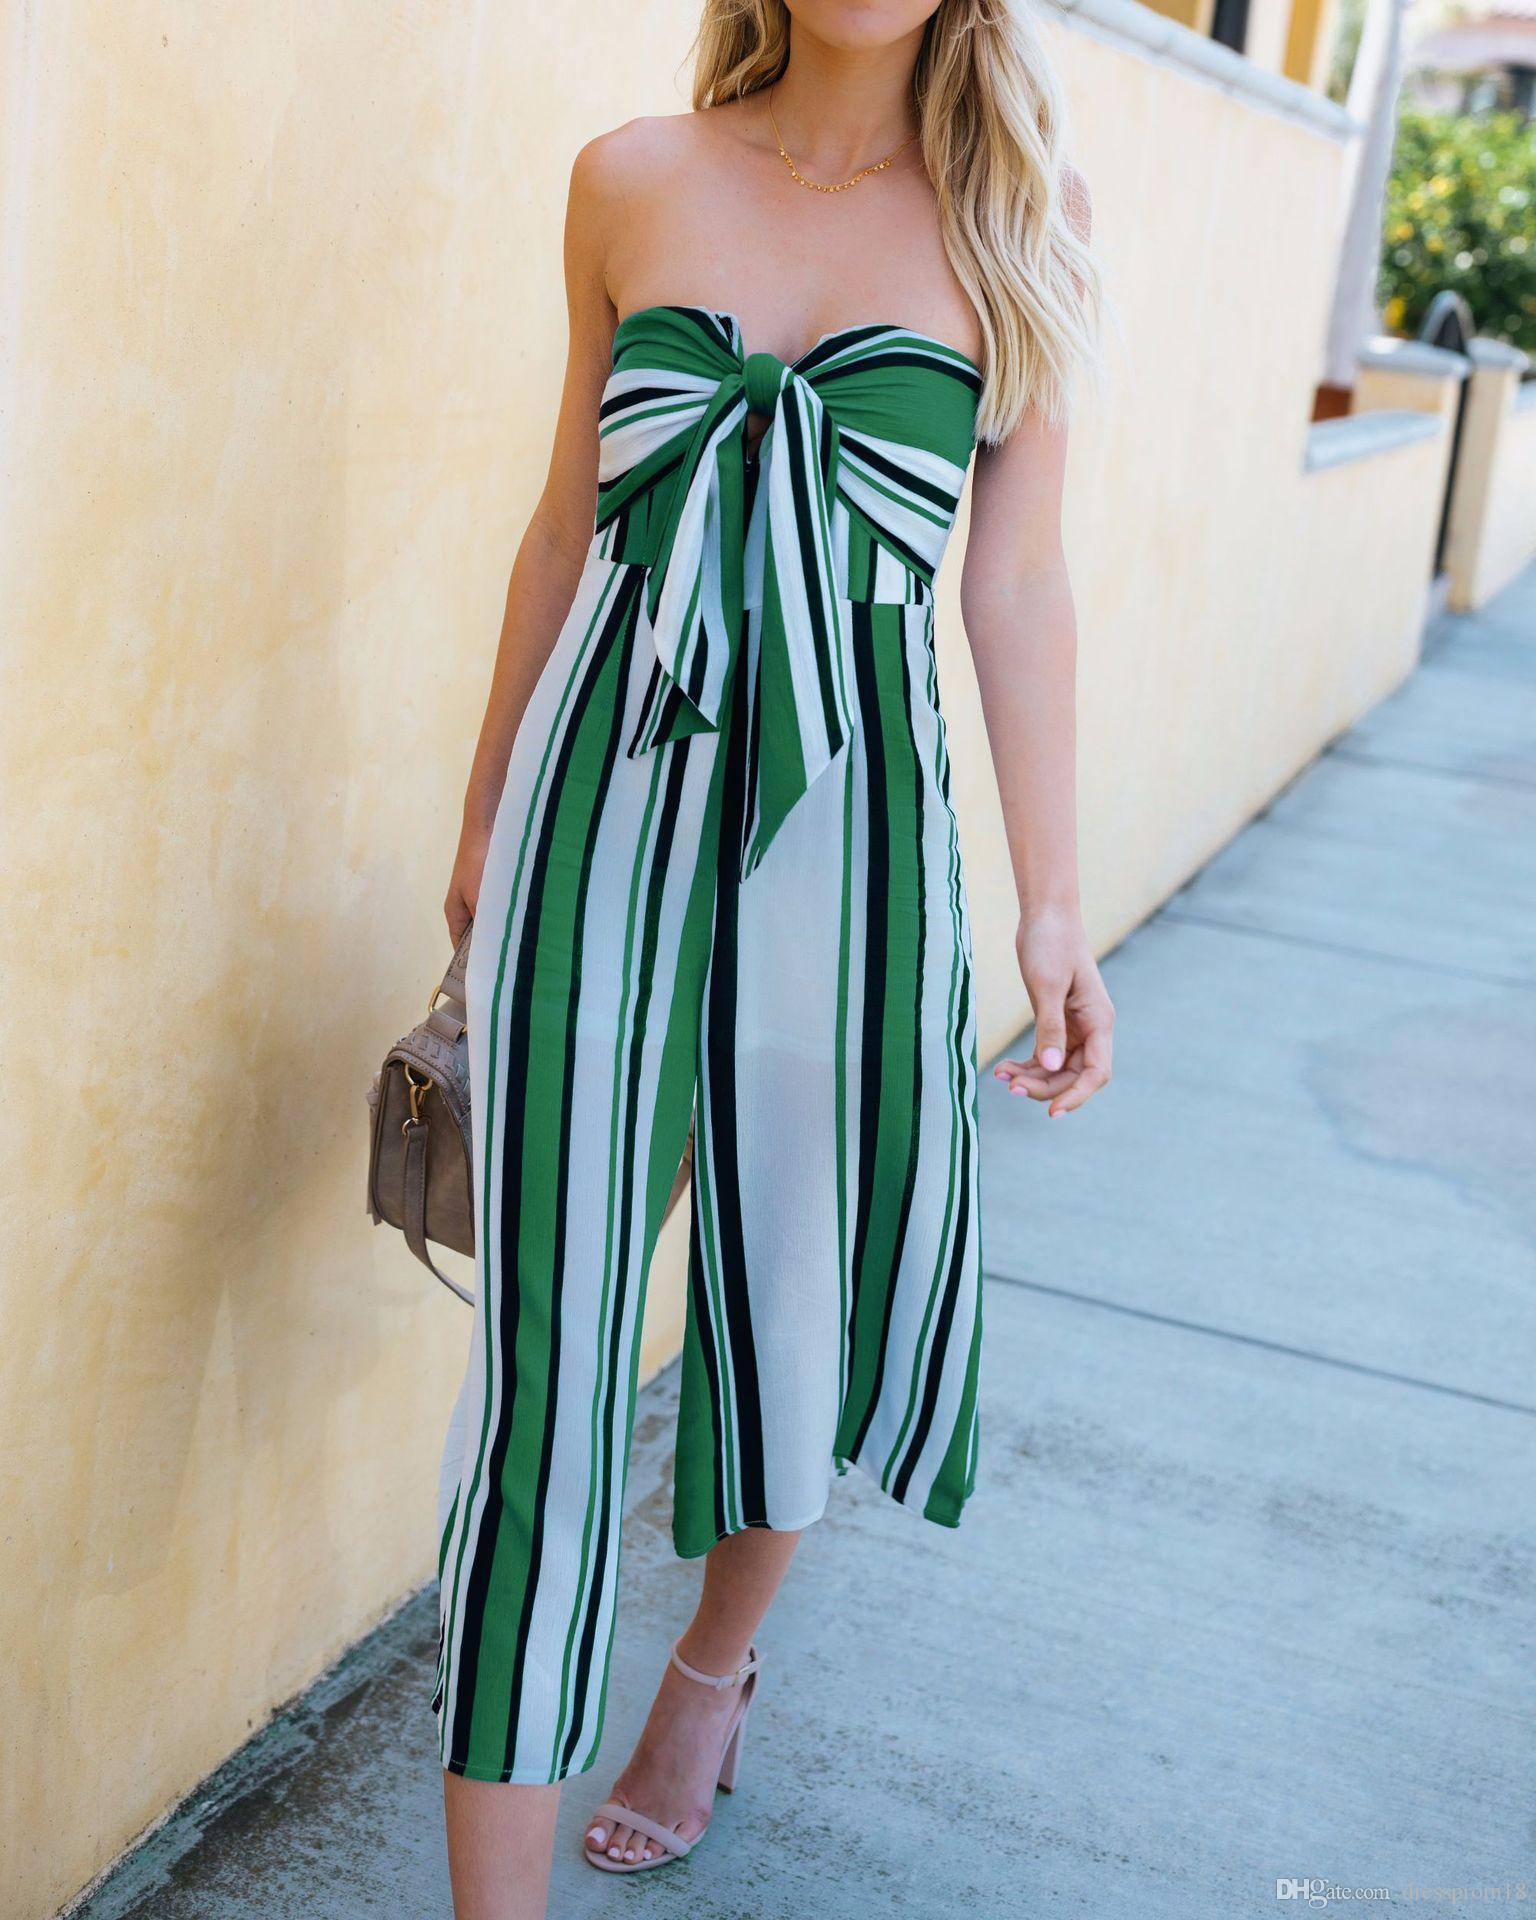 7076ddc69ebcb4 2019 Womens Sexy Strapless Bowknot Tie Bust Colorblocked Striped Jumpsuit  Sweetheart Neck Loose Capris Rompers Casual Playsuit Summer From  Dressprom18, ...